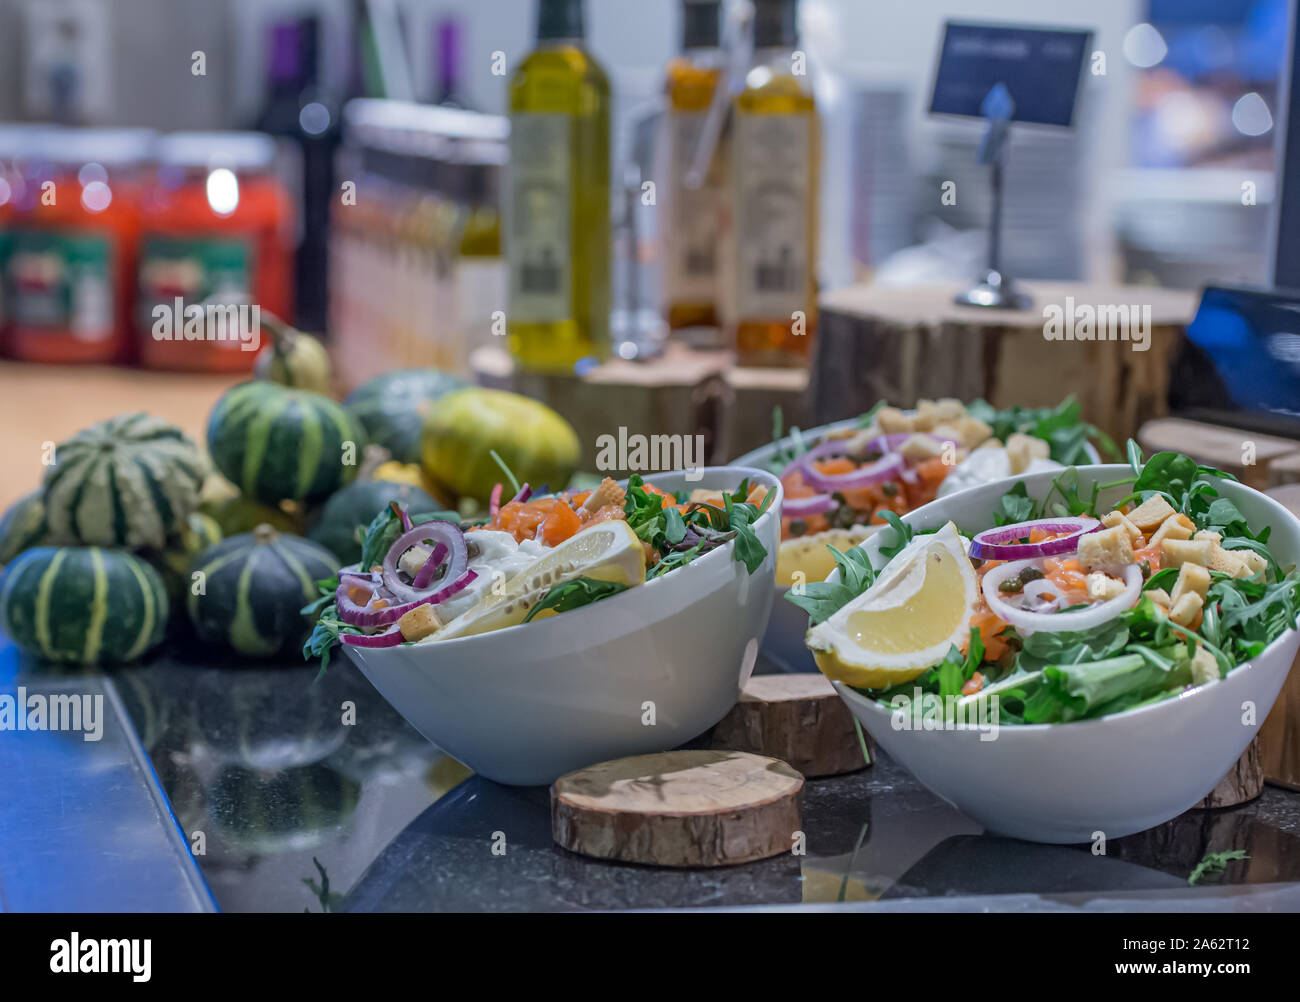 salad bar with bowls with onions and lemon rucola and pumpkin in the background as well as olive oil and other sauces Stock Photo